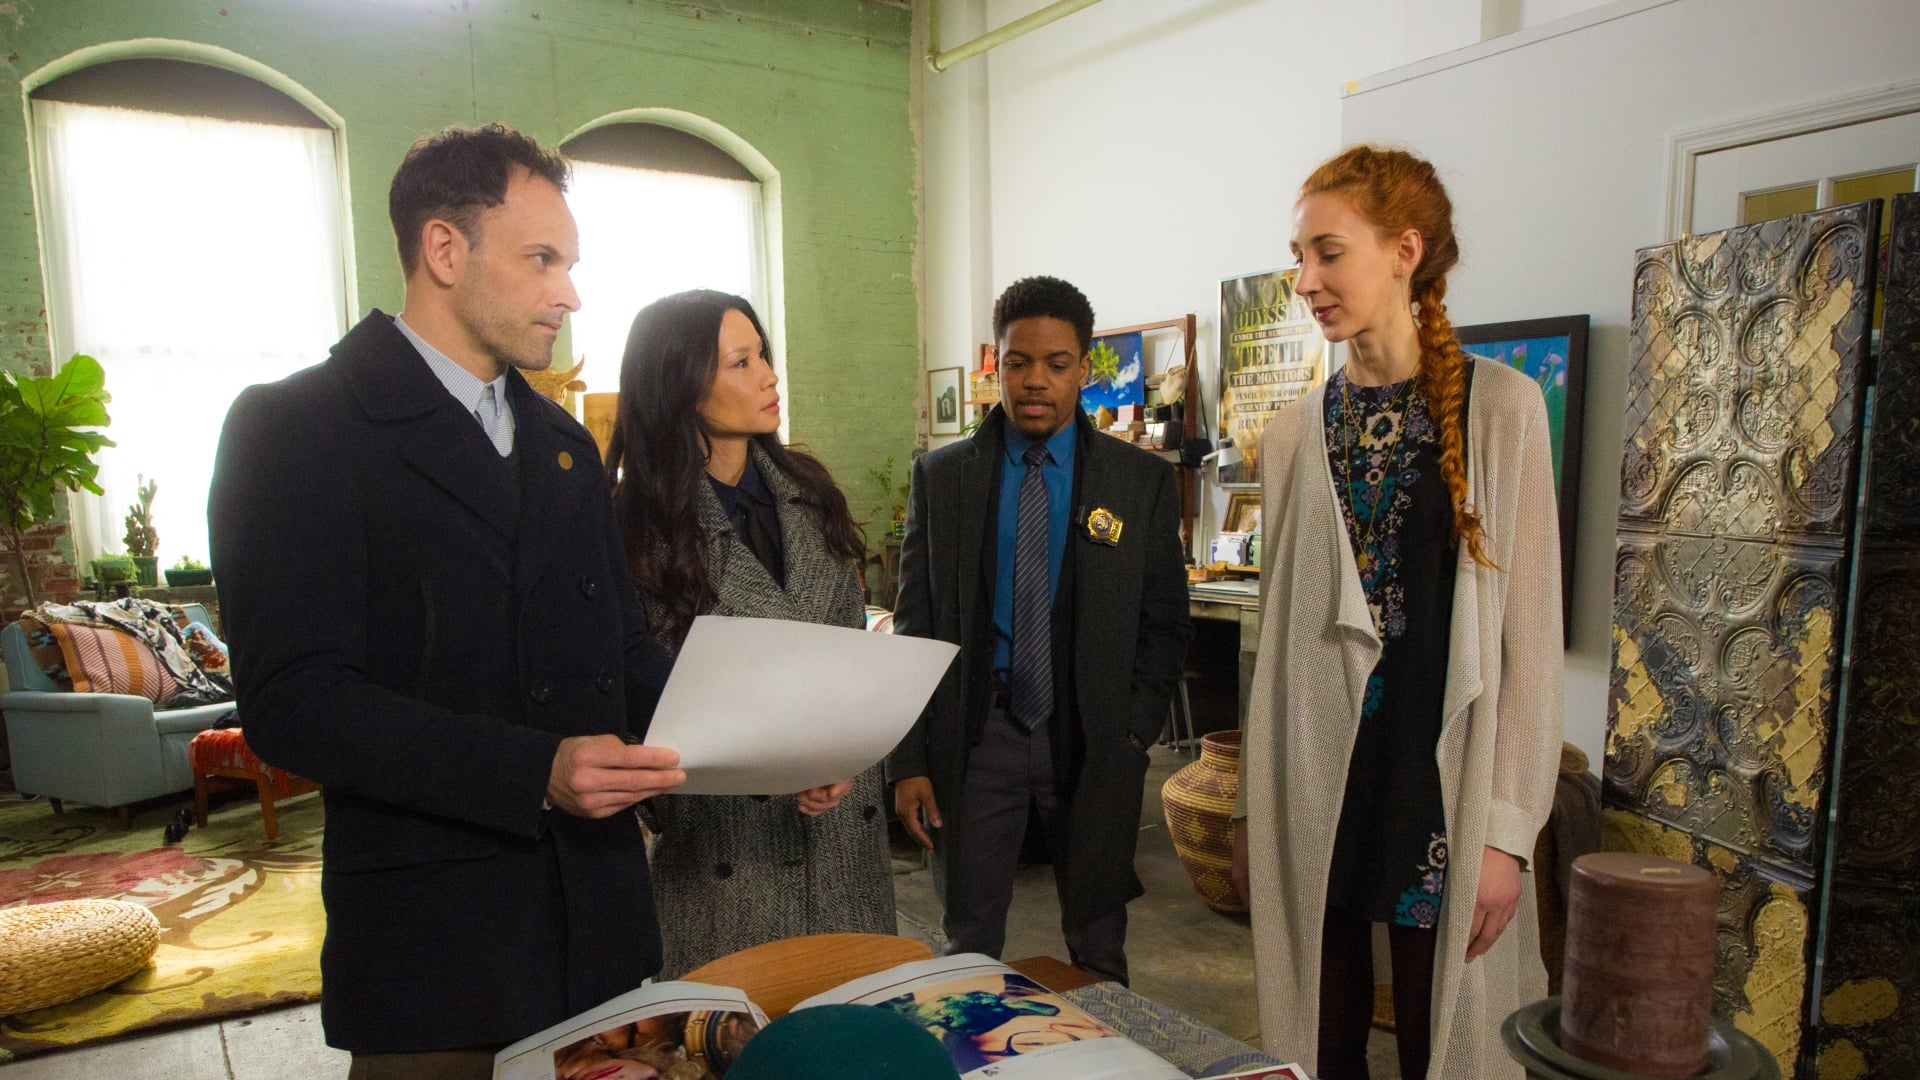 Elementary Season 4 :Episode 20  Art Imitates Art